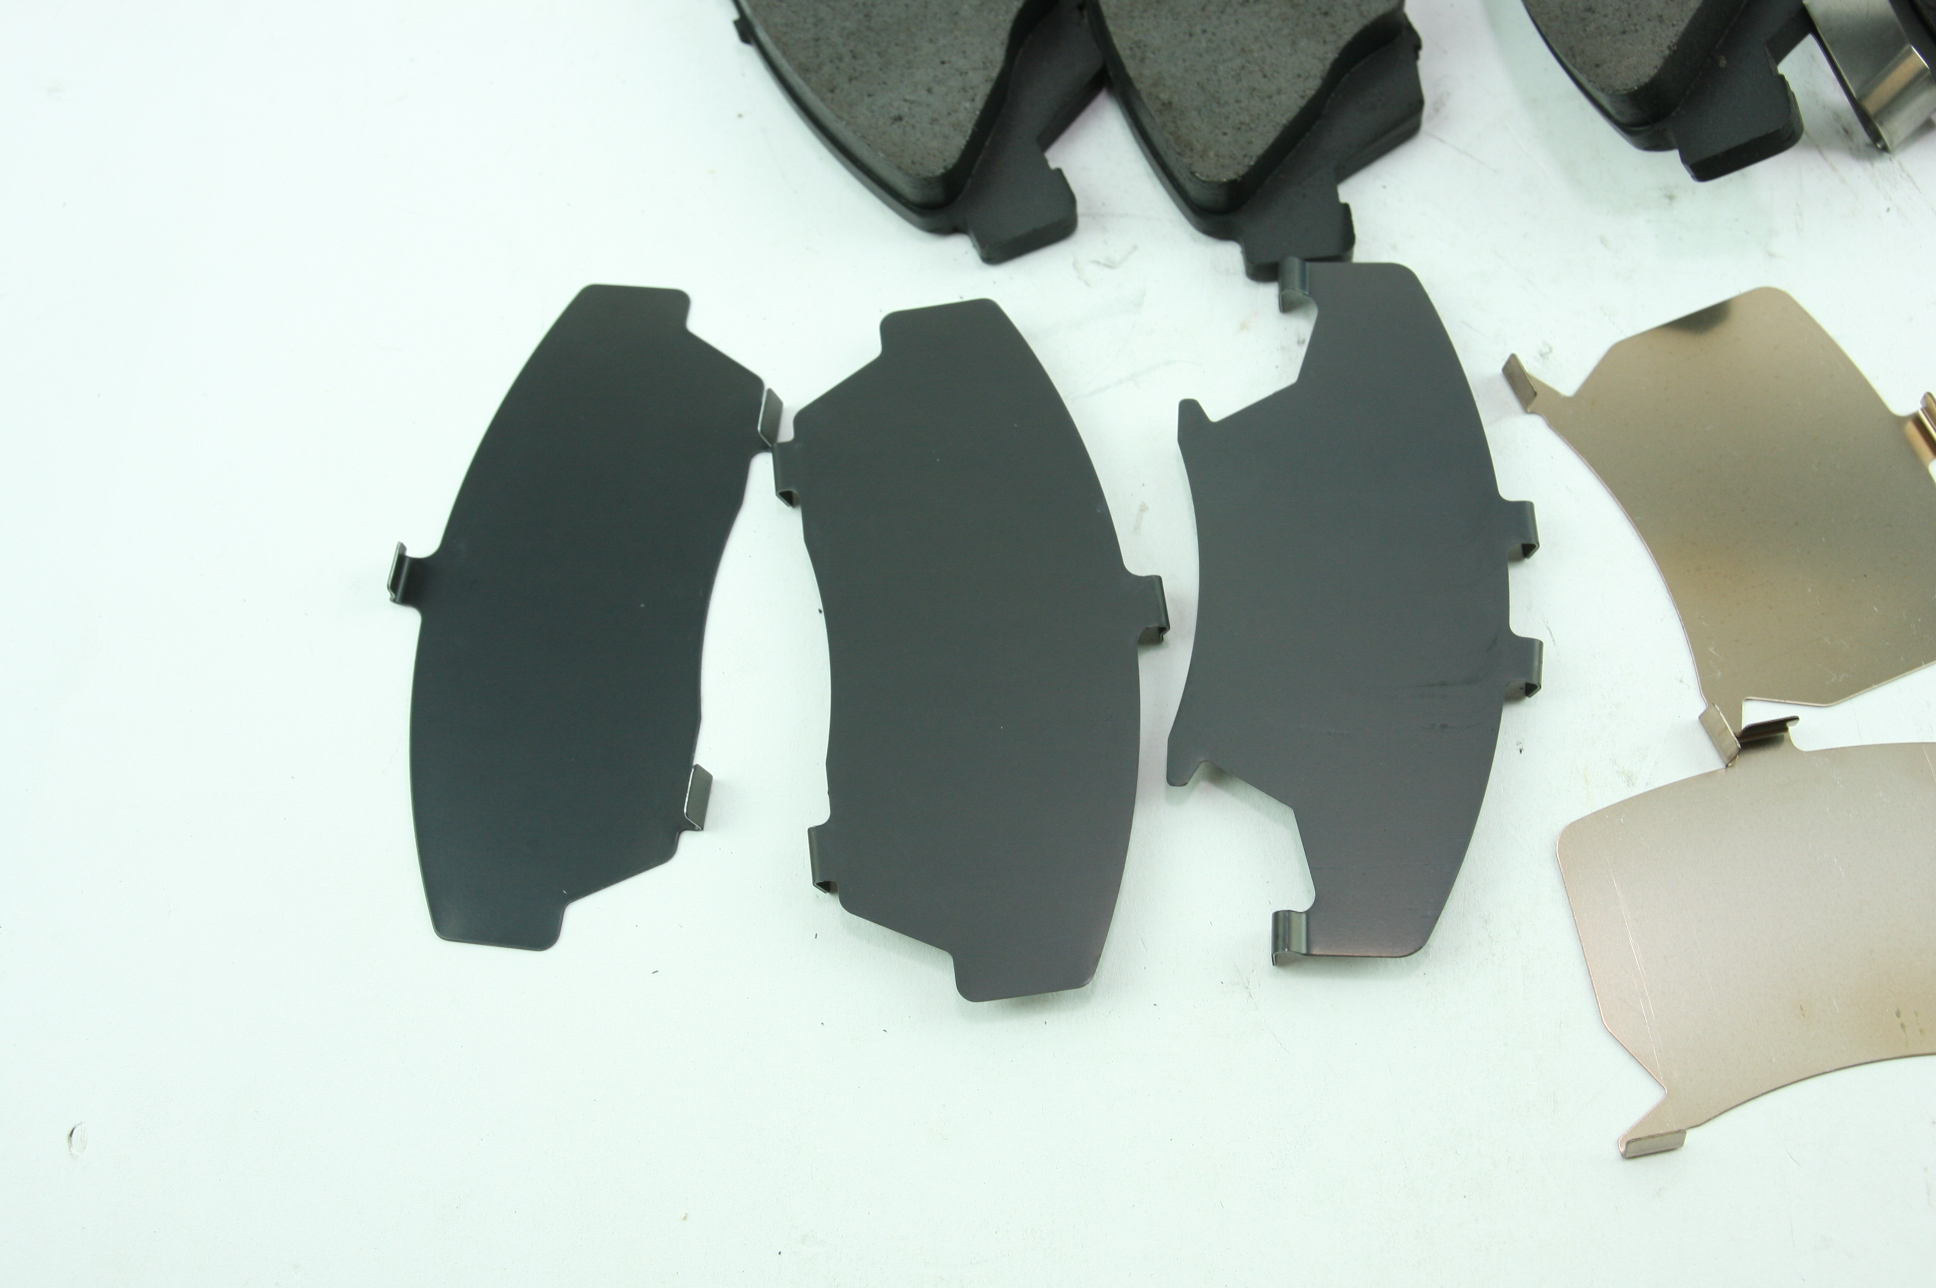 *New OEM 45022-S7A-010 Genuine Honda Front Brake Pads Set Civic 3Dr SI Acura RSX - image 7